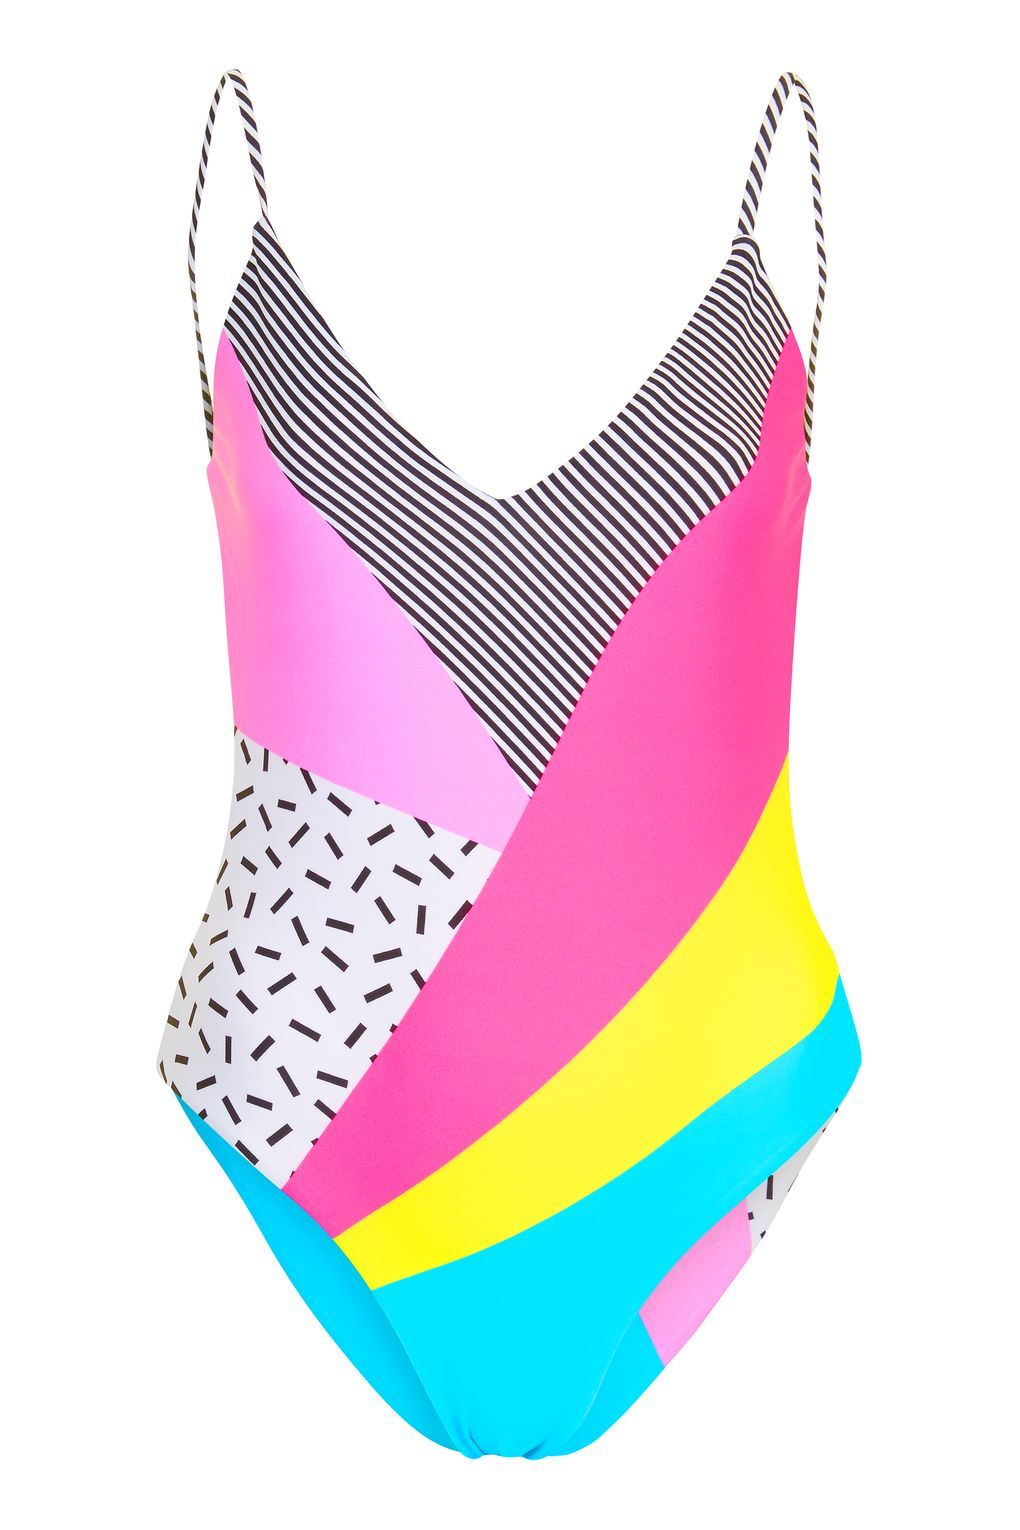 cecb89e6a4b 80s Patchwork Swimsuit in 2019 | xanadu | 80s swimsuit, Swimsuits ...